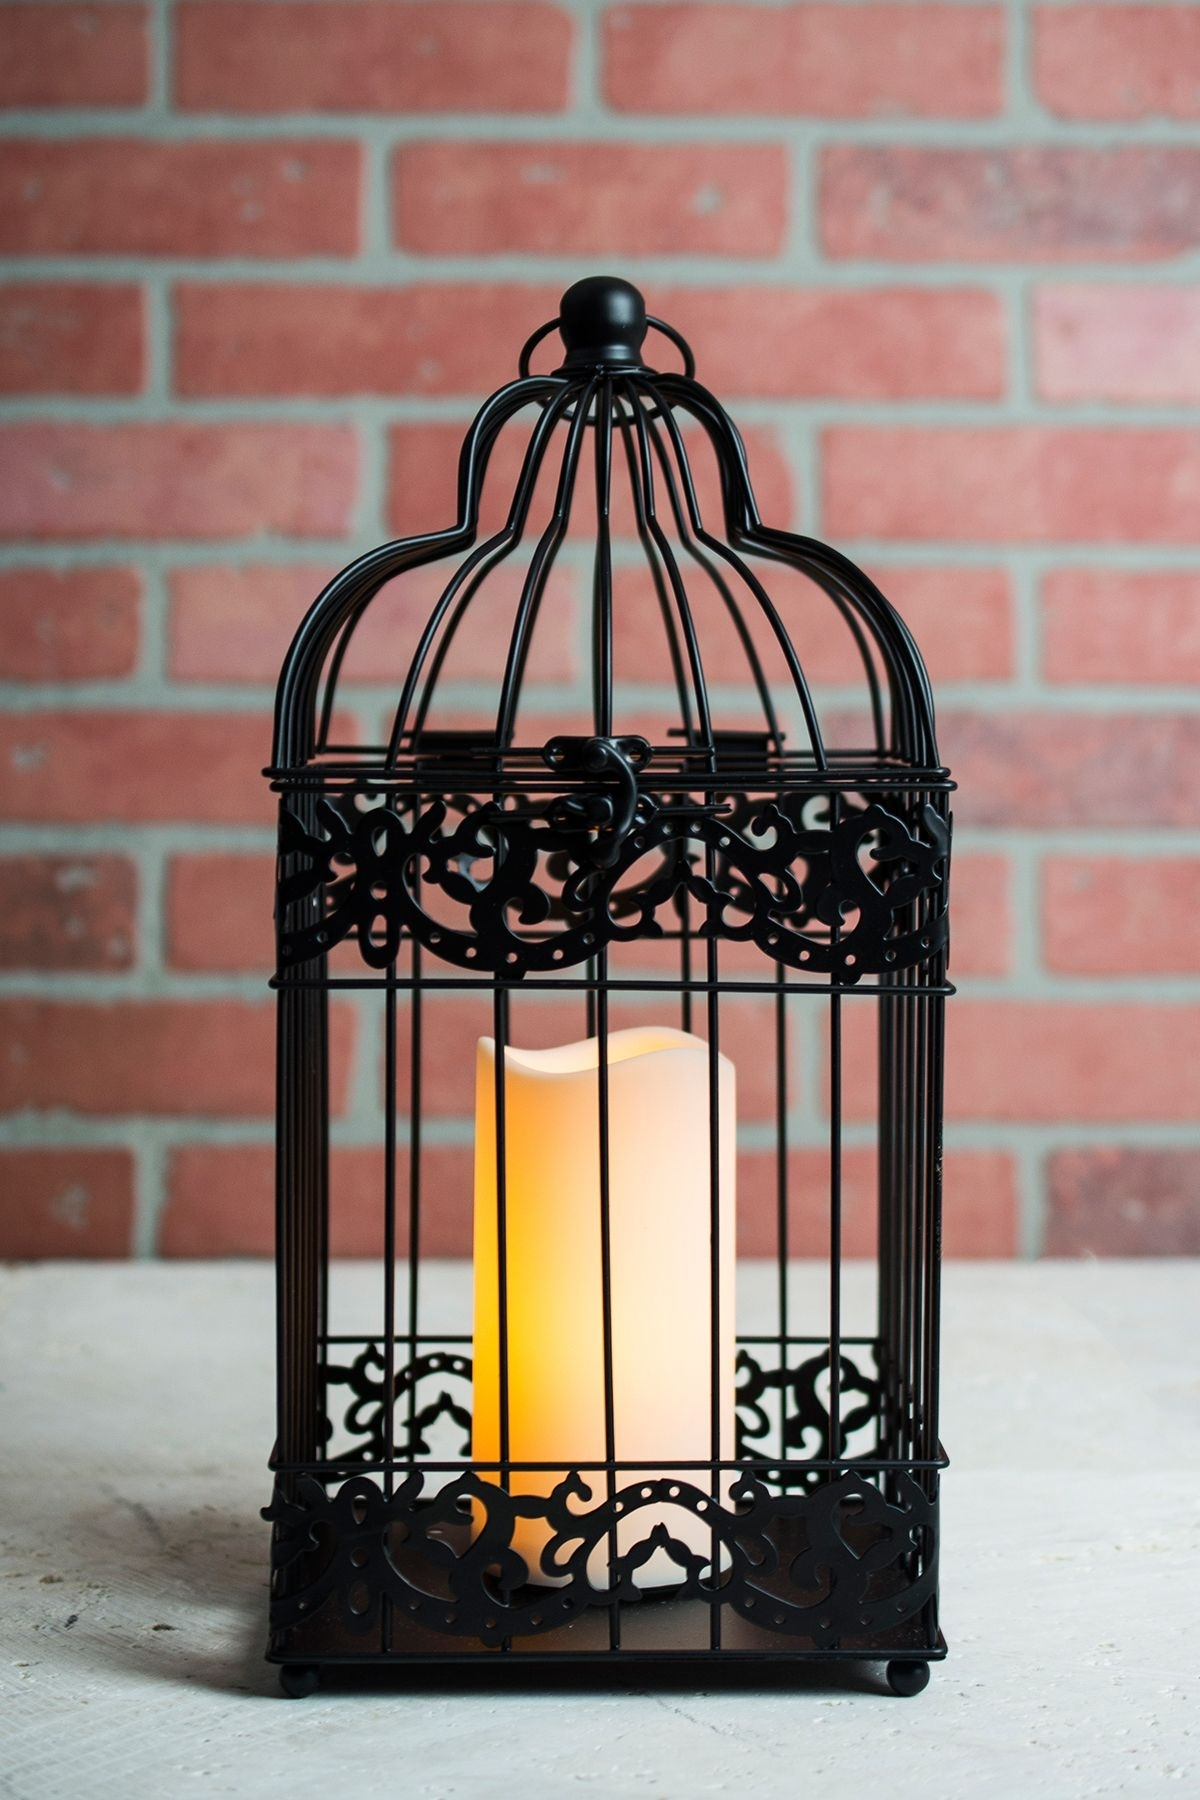 Black Bird Cage Candle Lantern Battery Operated 15In | Diy Weddings Intended For Outdoor Lanterns With Battery Operated Candles (View 4 of 20)